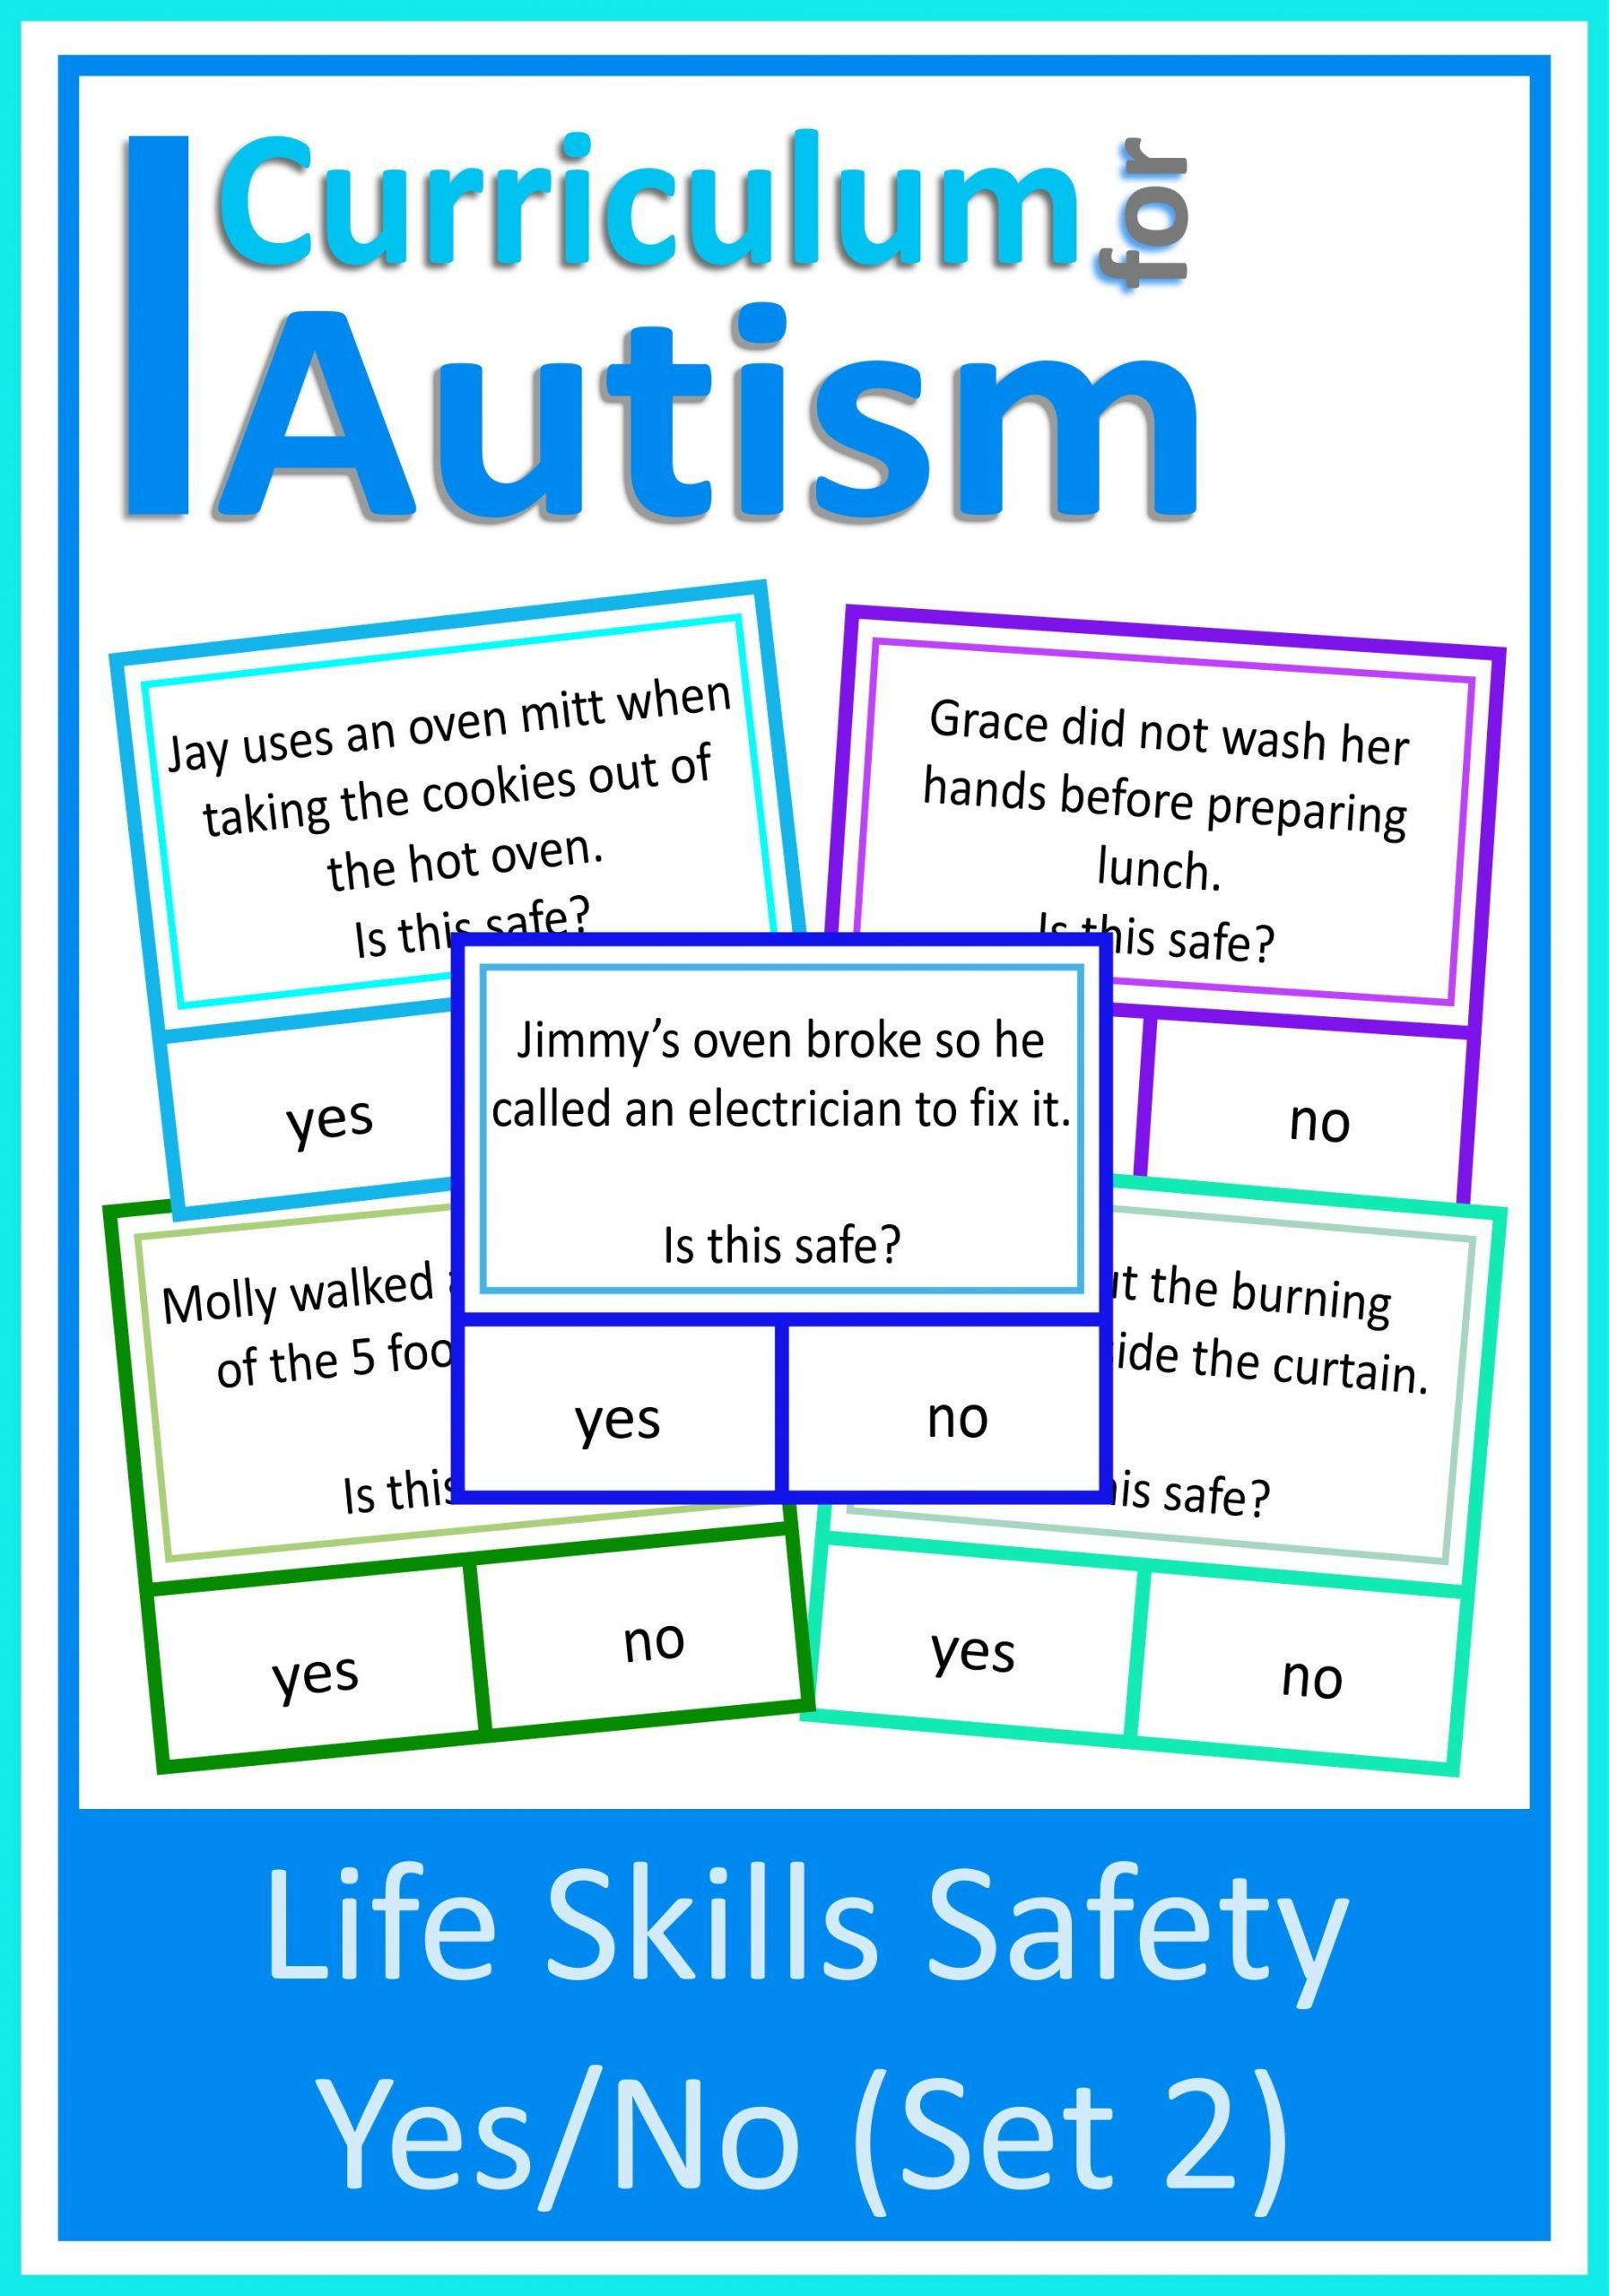 Autism Life Skills Worksheets is This Safe Yes No Safety Scenarios Set 2 Autism Life Skills — Curriculum for Autism